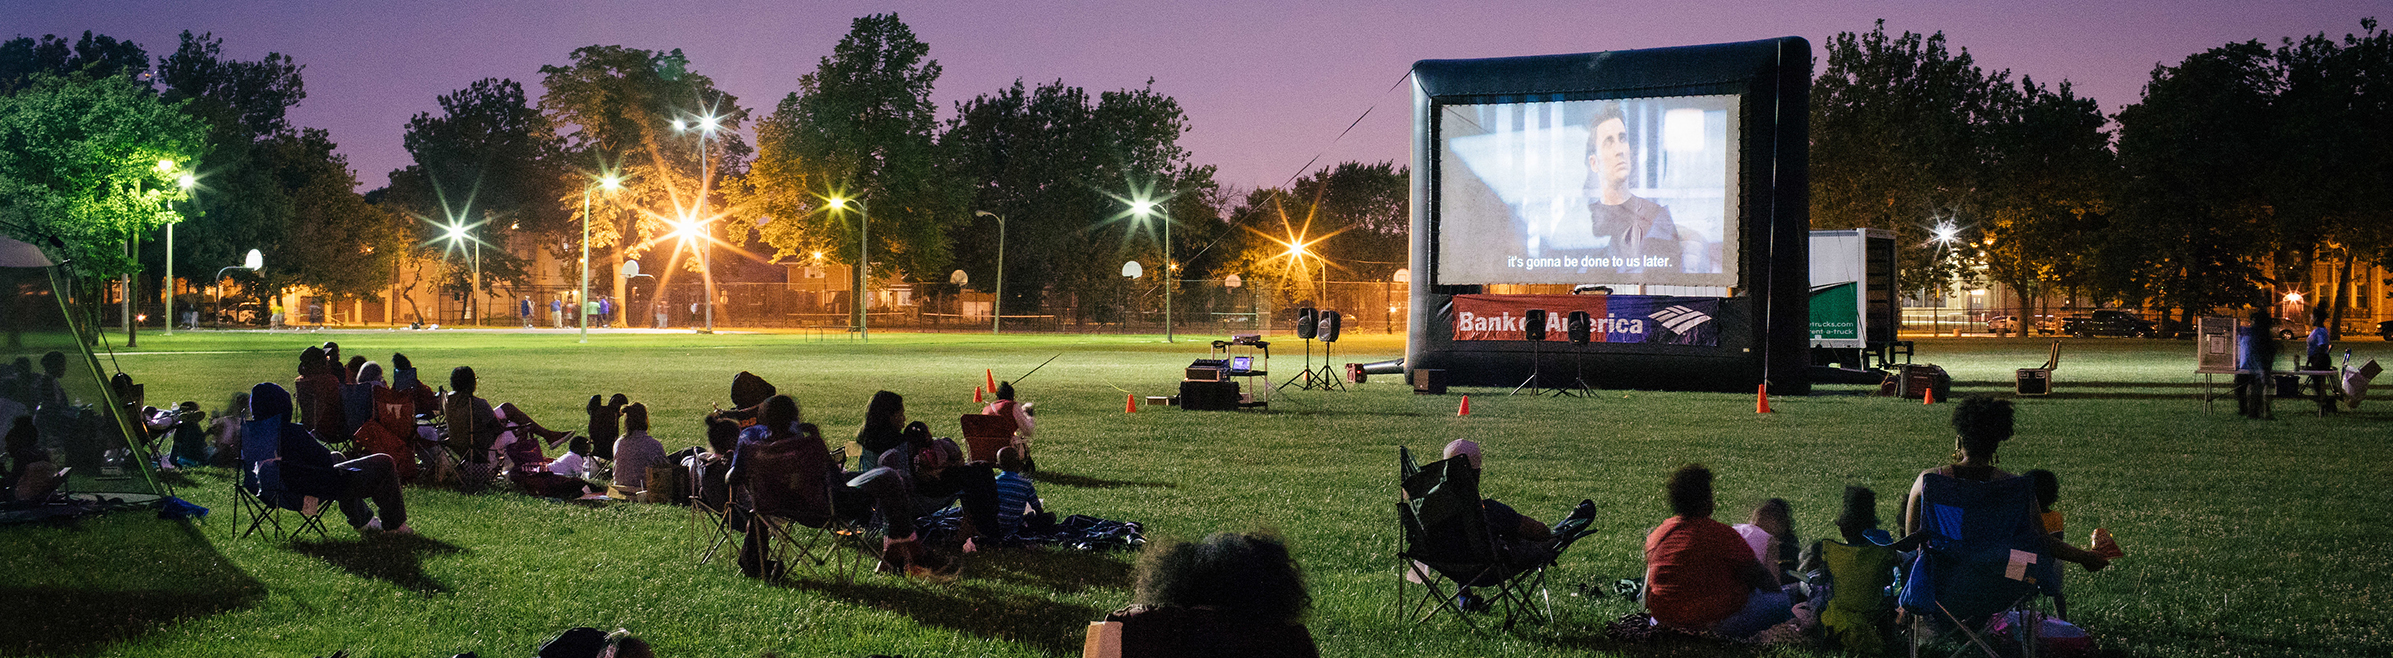 A crowd sits around an outdoor movie screen to watch a movie in the parks.